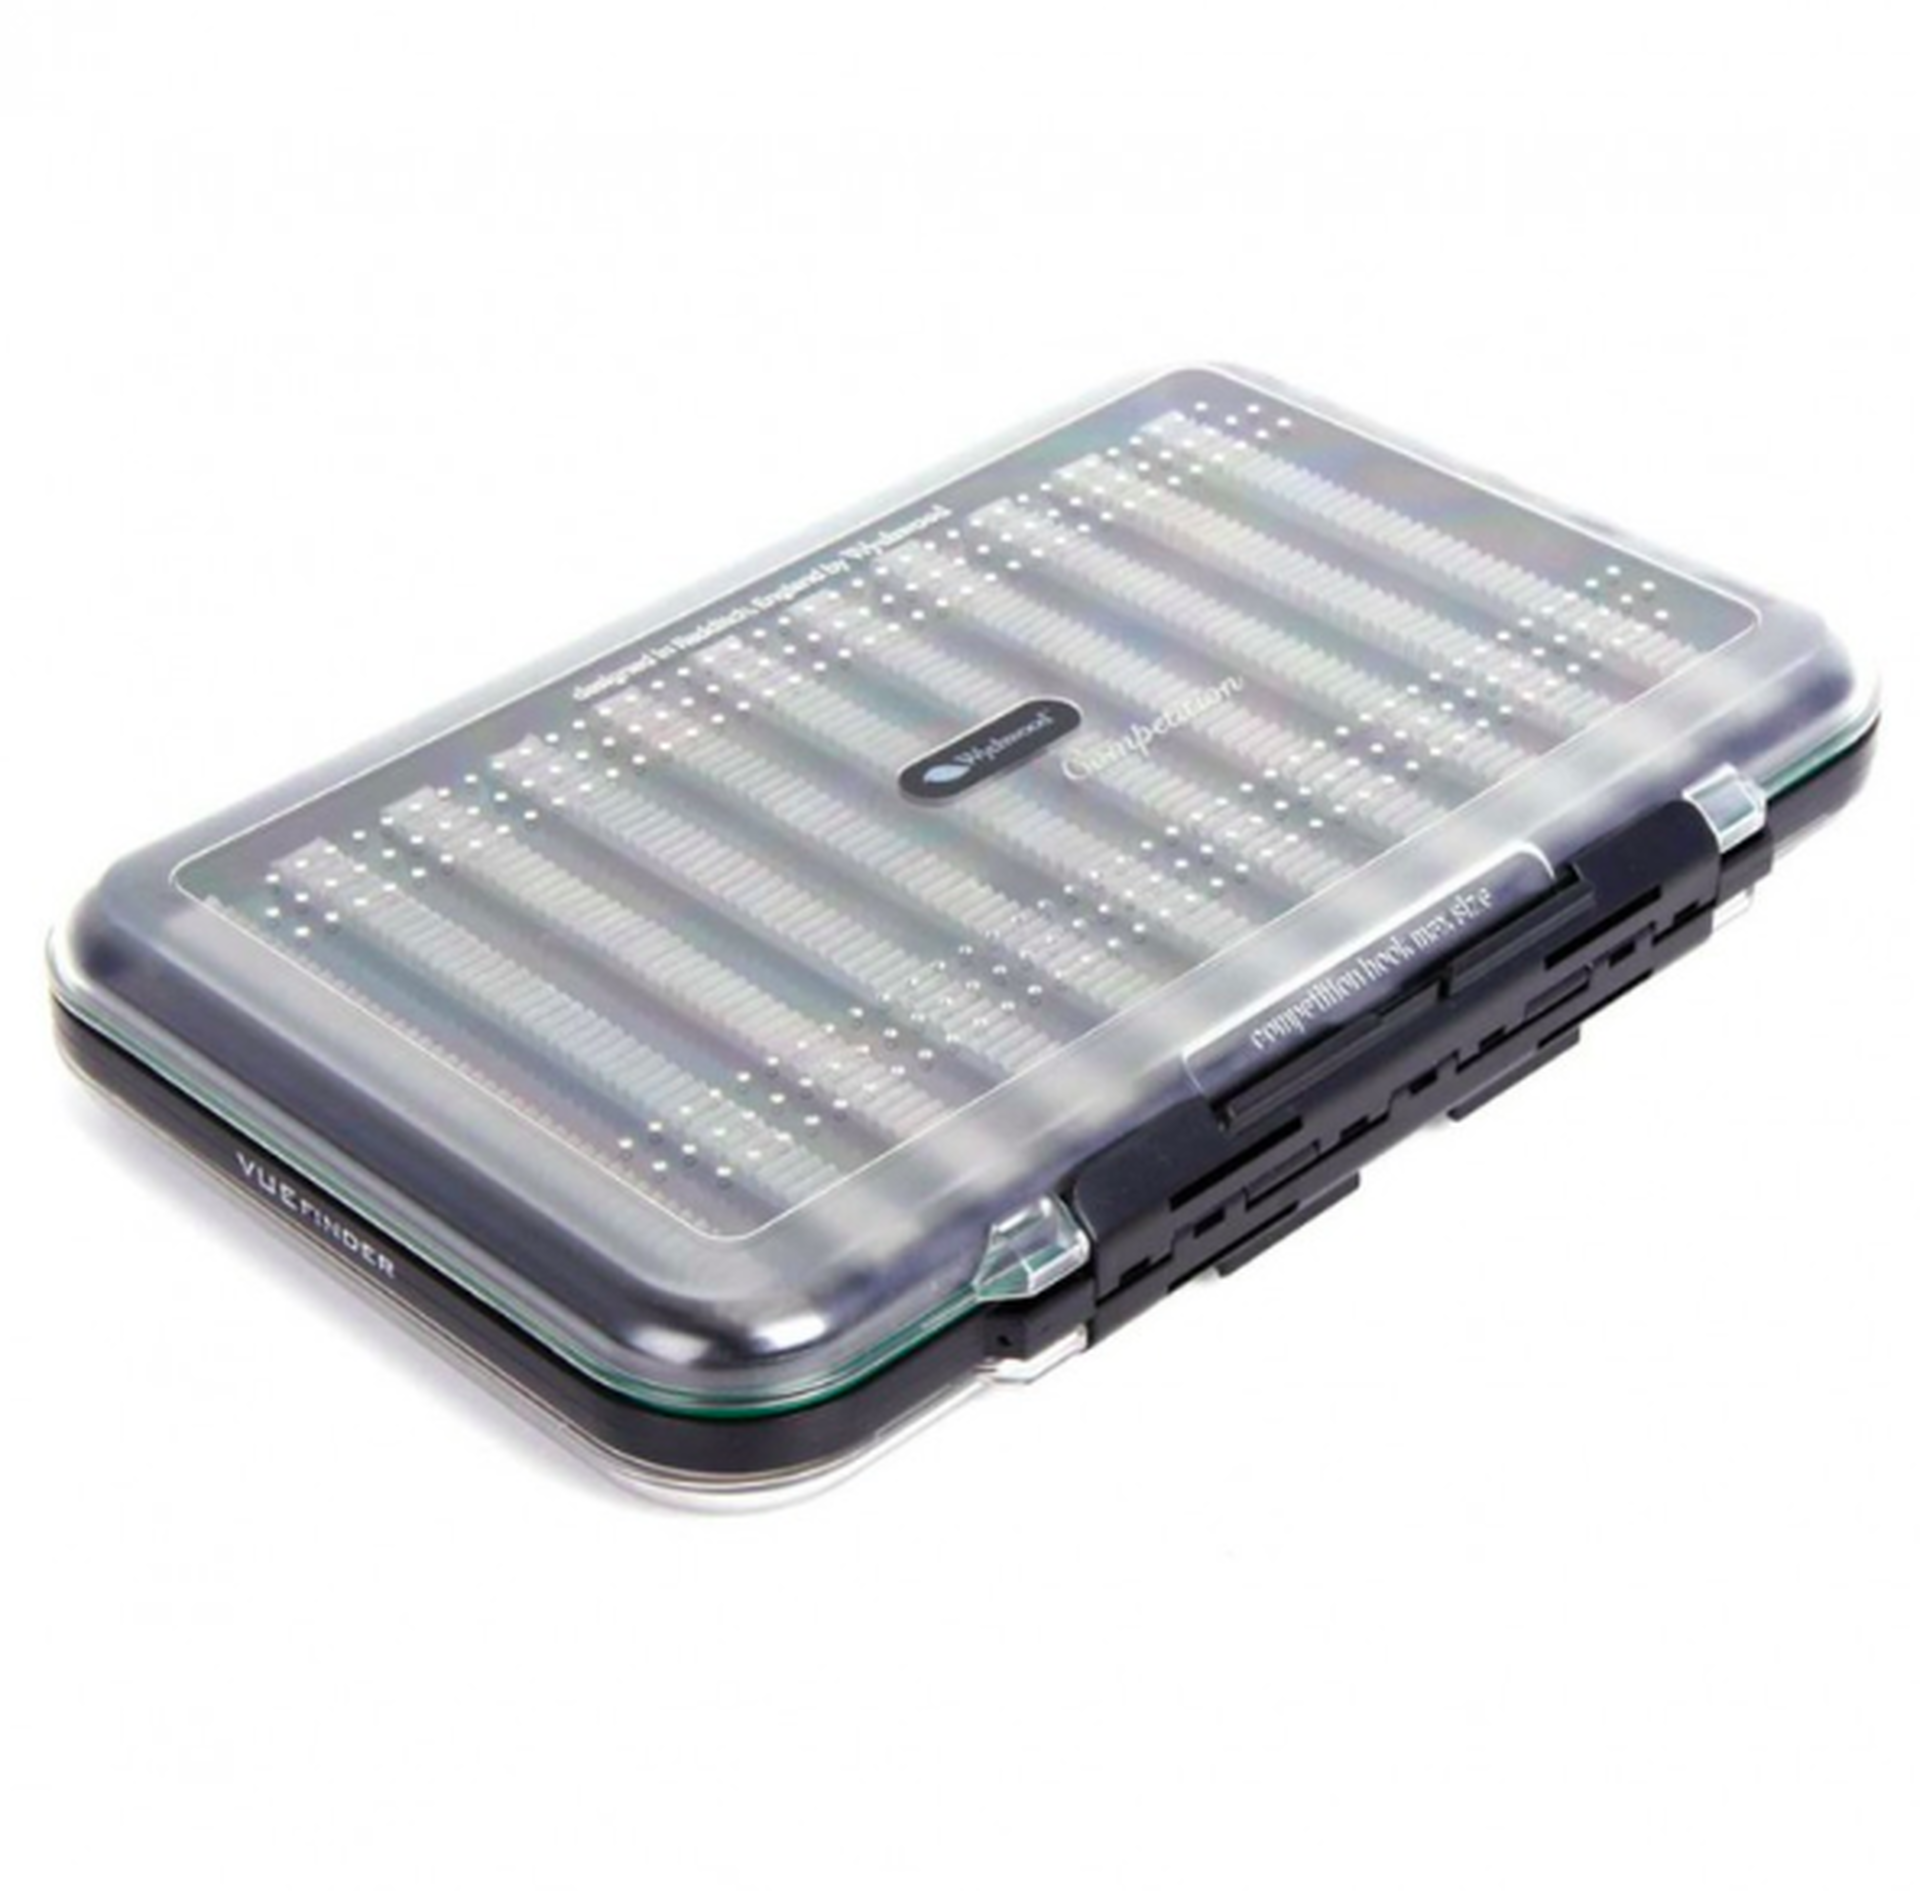 Wychwood Vuefinder Competition Maxi Fly Boxes Fly Box Fishing Lights Competition